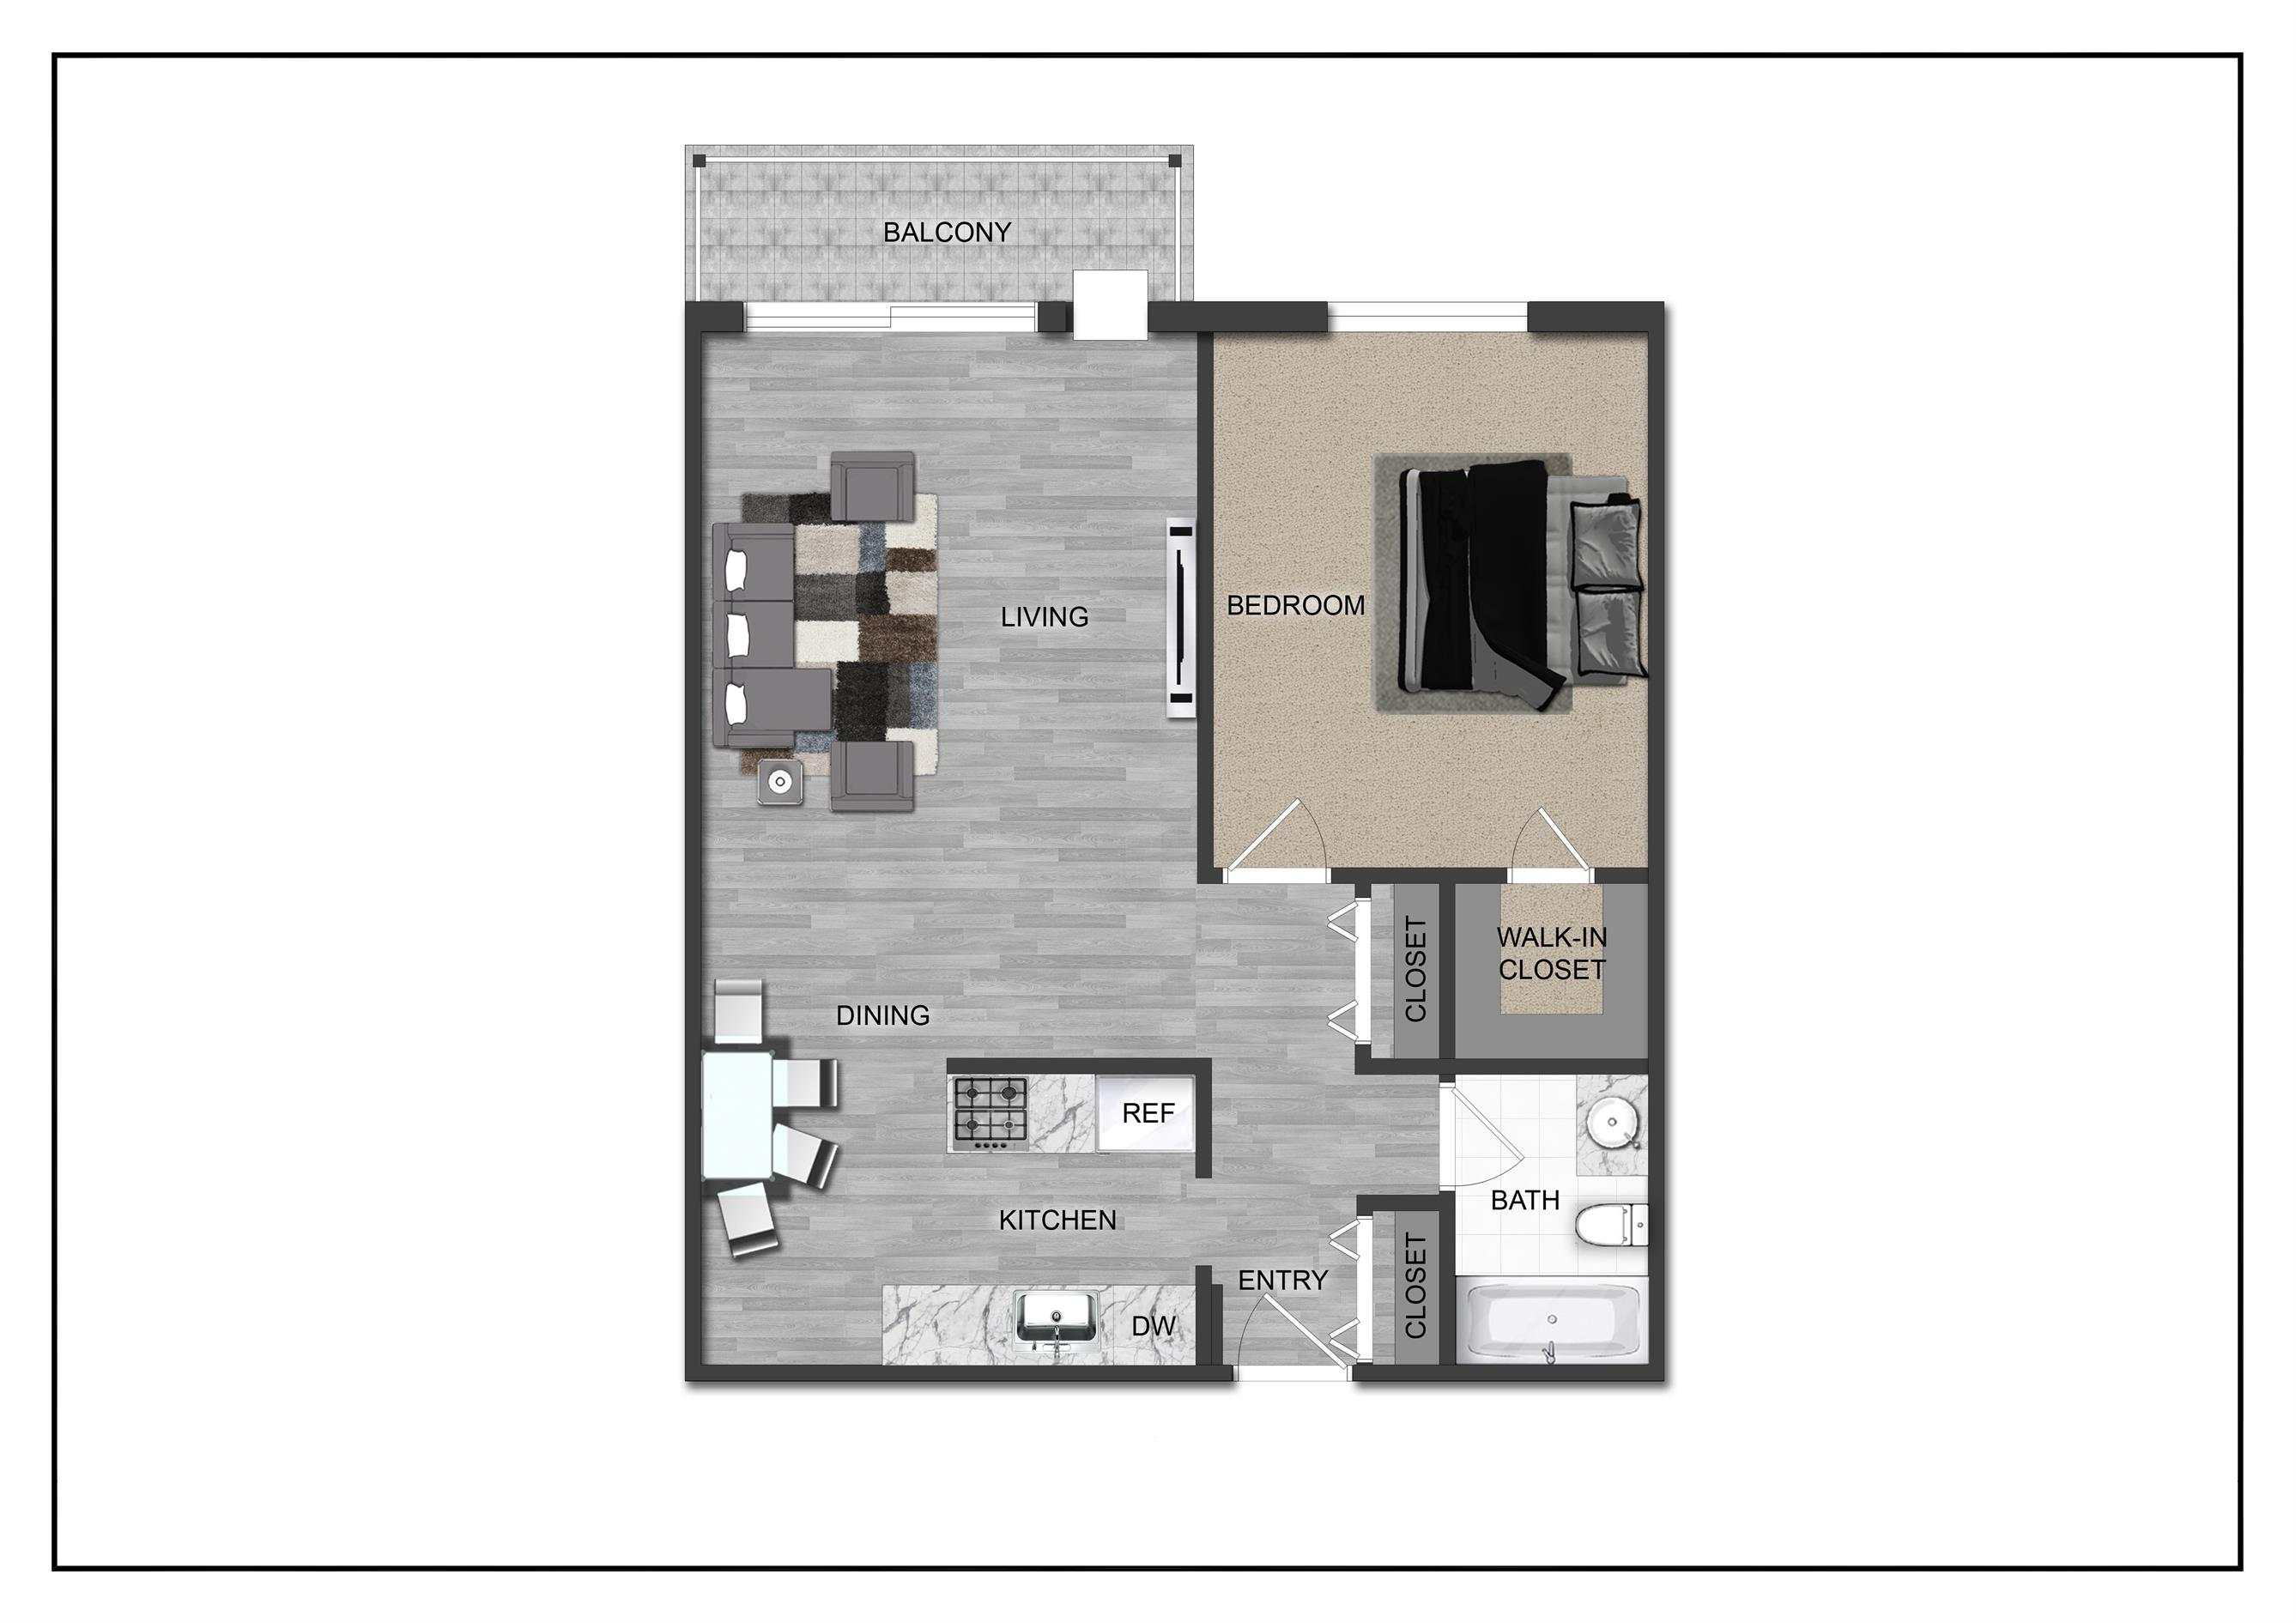 Image of 7609 32nd Ave N, # 120